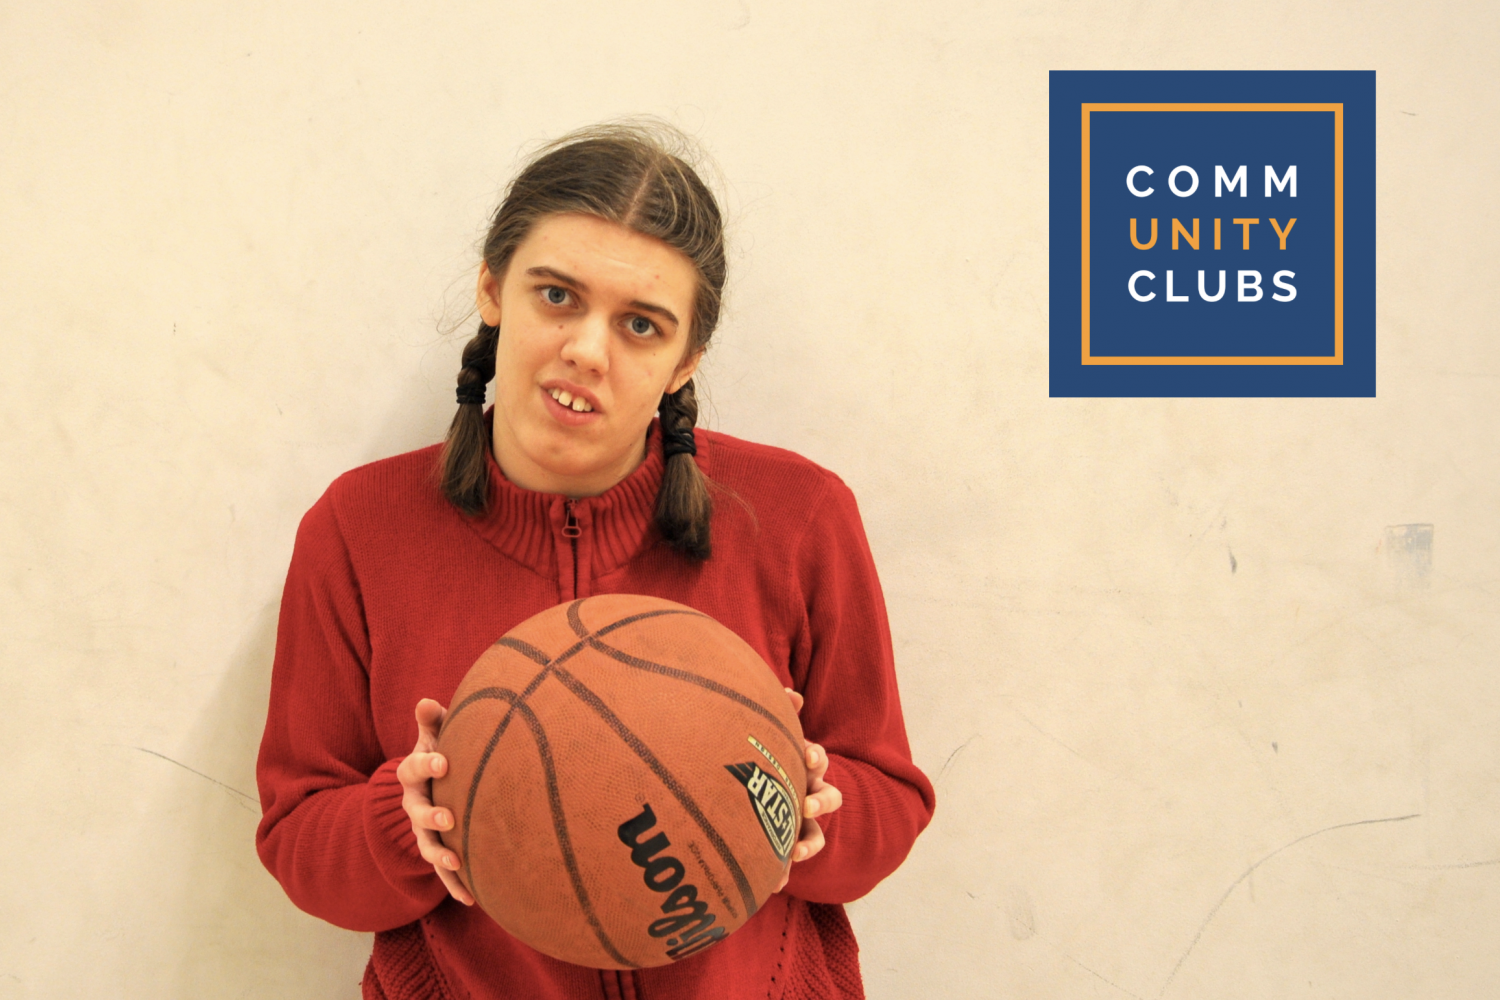 Ellie's Story Club Wandsworth - Disability Sports Coach - Unity 'Community Clubs tackling isolation & isolation'